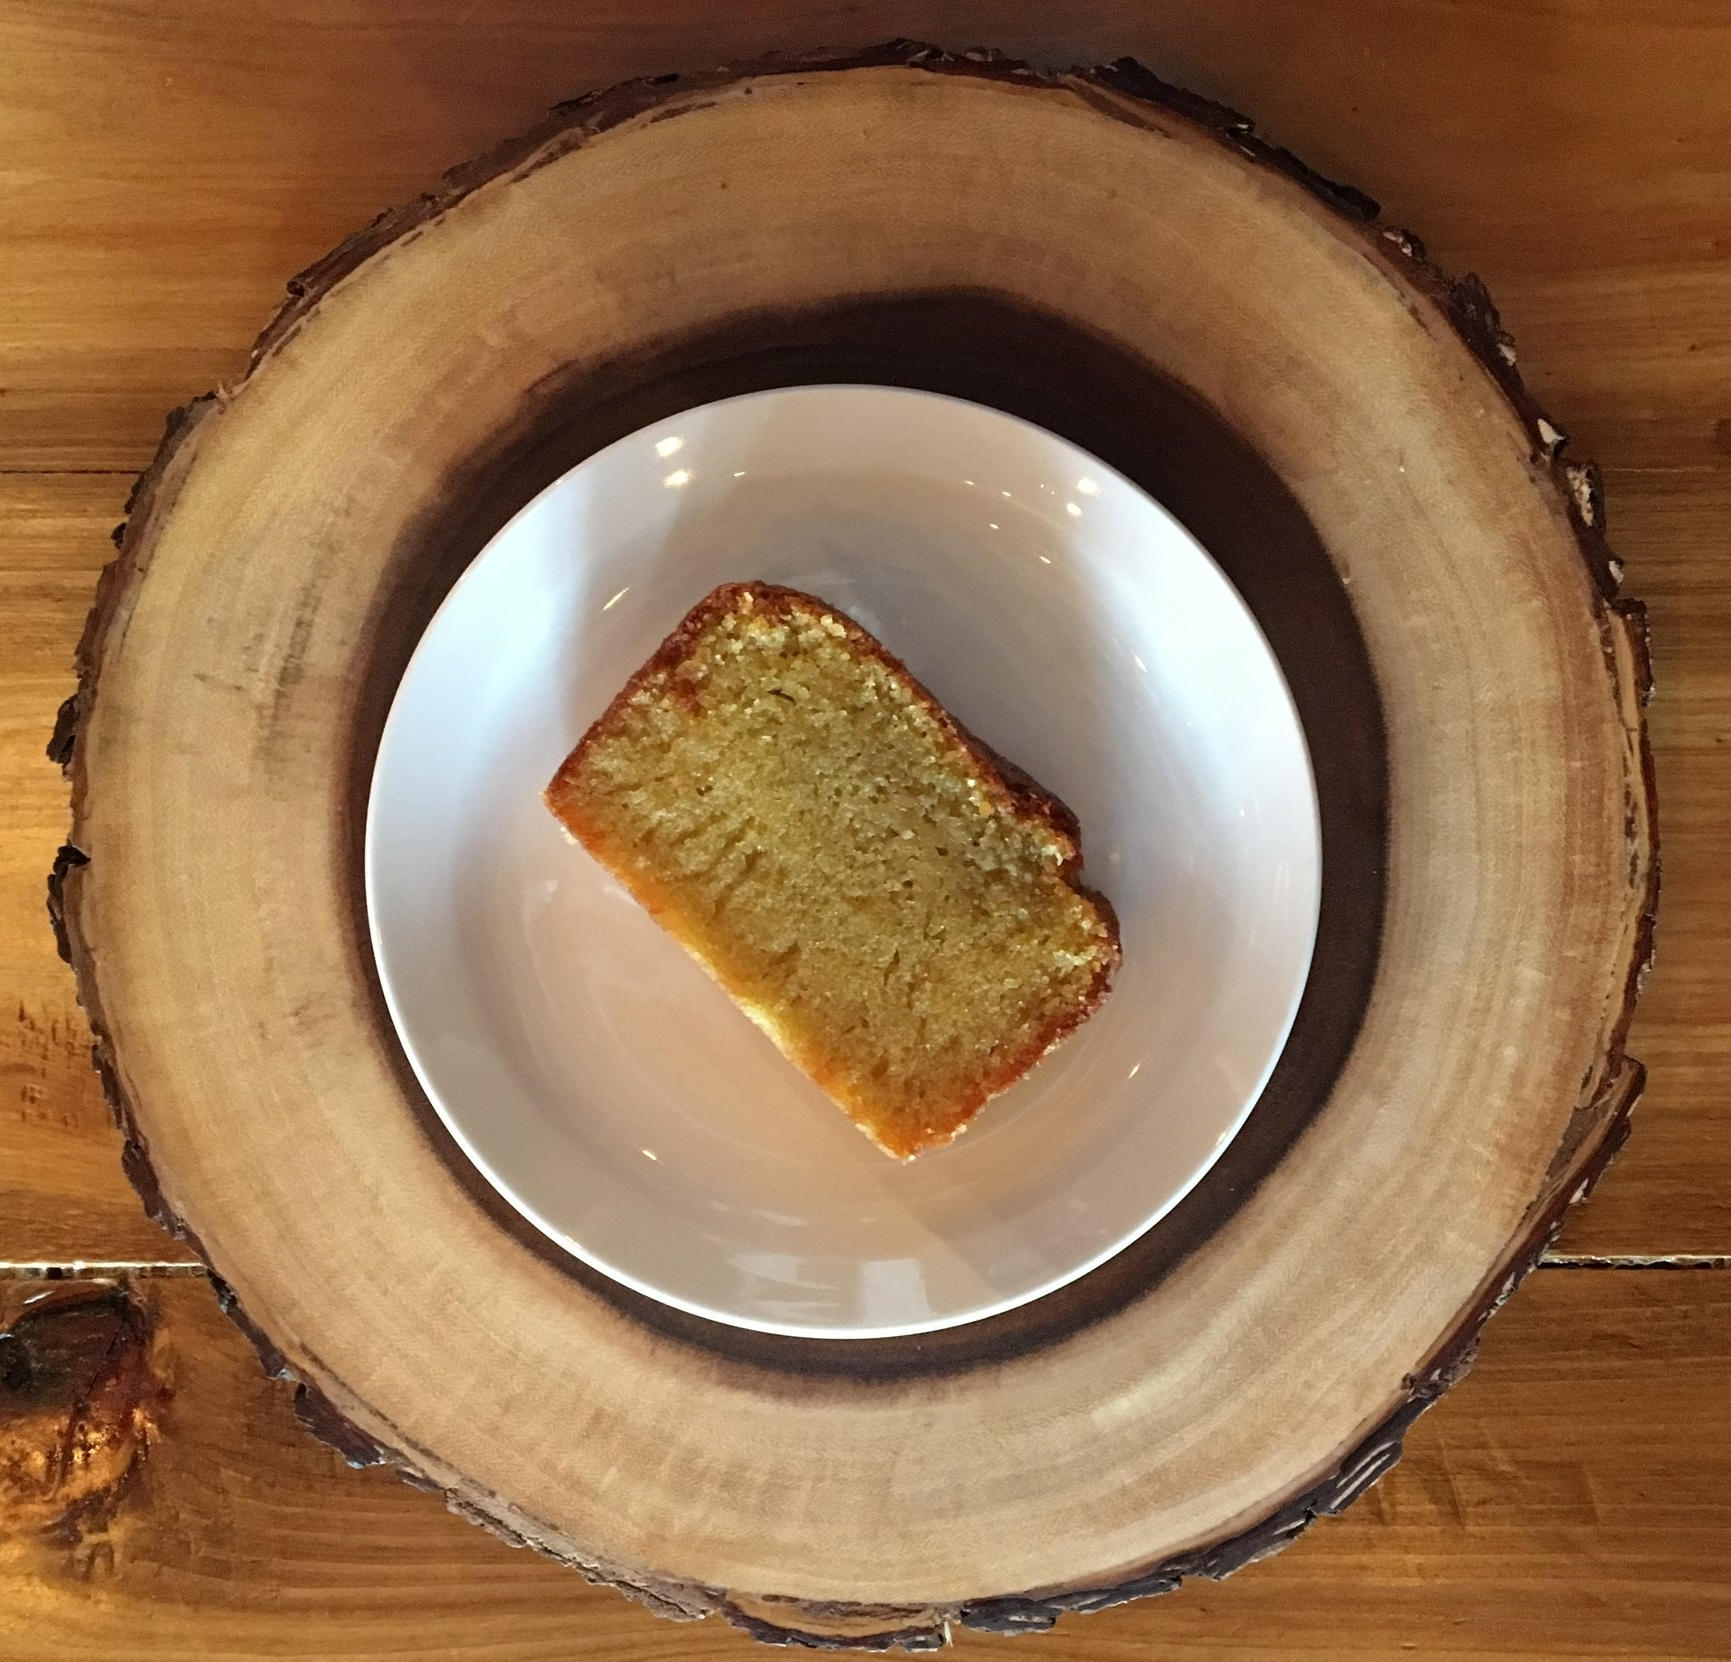 Citrus Olive Oil Cake  Loaf bread made with oranges and olive oil. Perfectly moist and delicious!